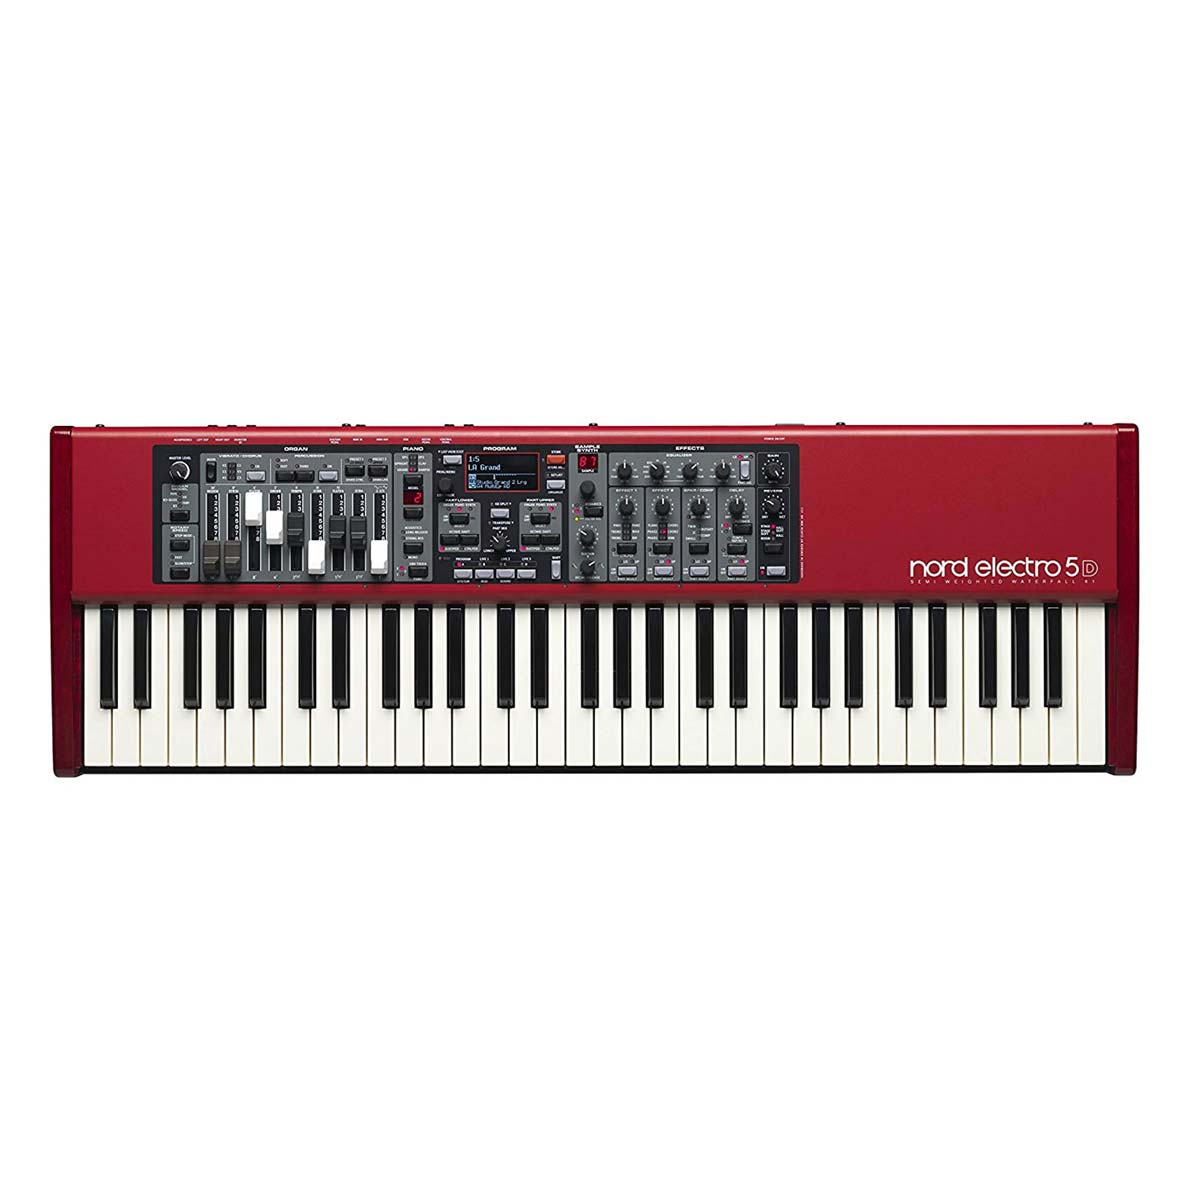 Nord Electro 5D 61 stagepiano